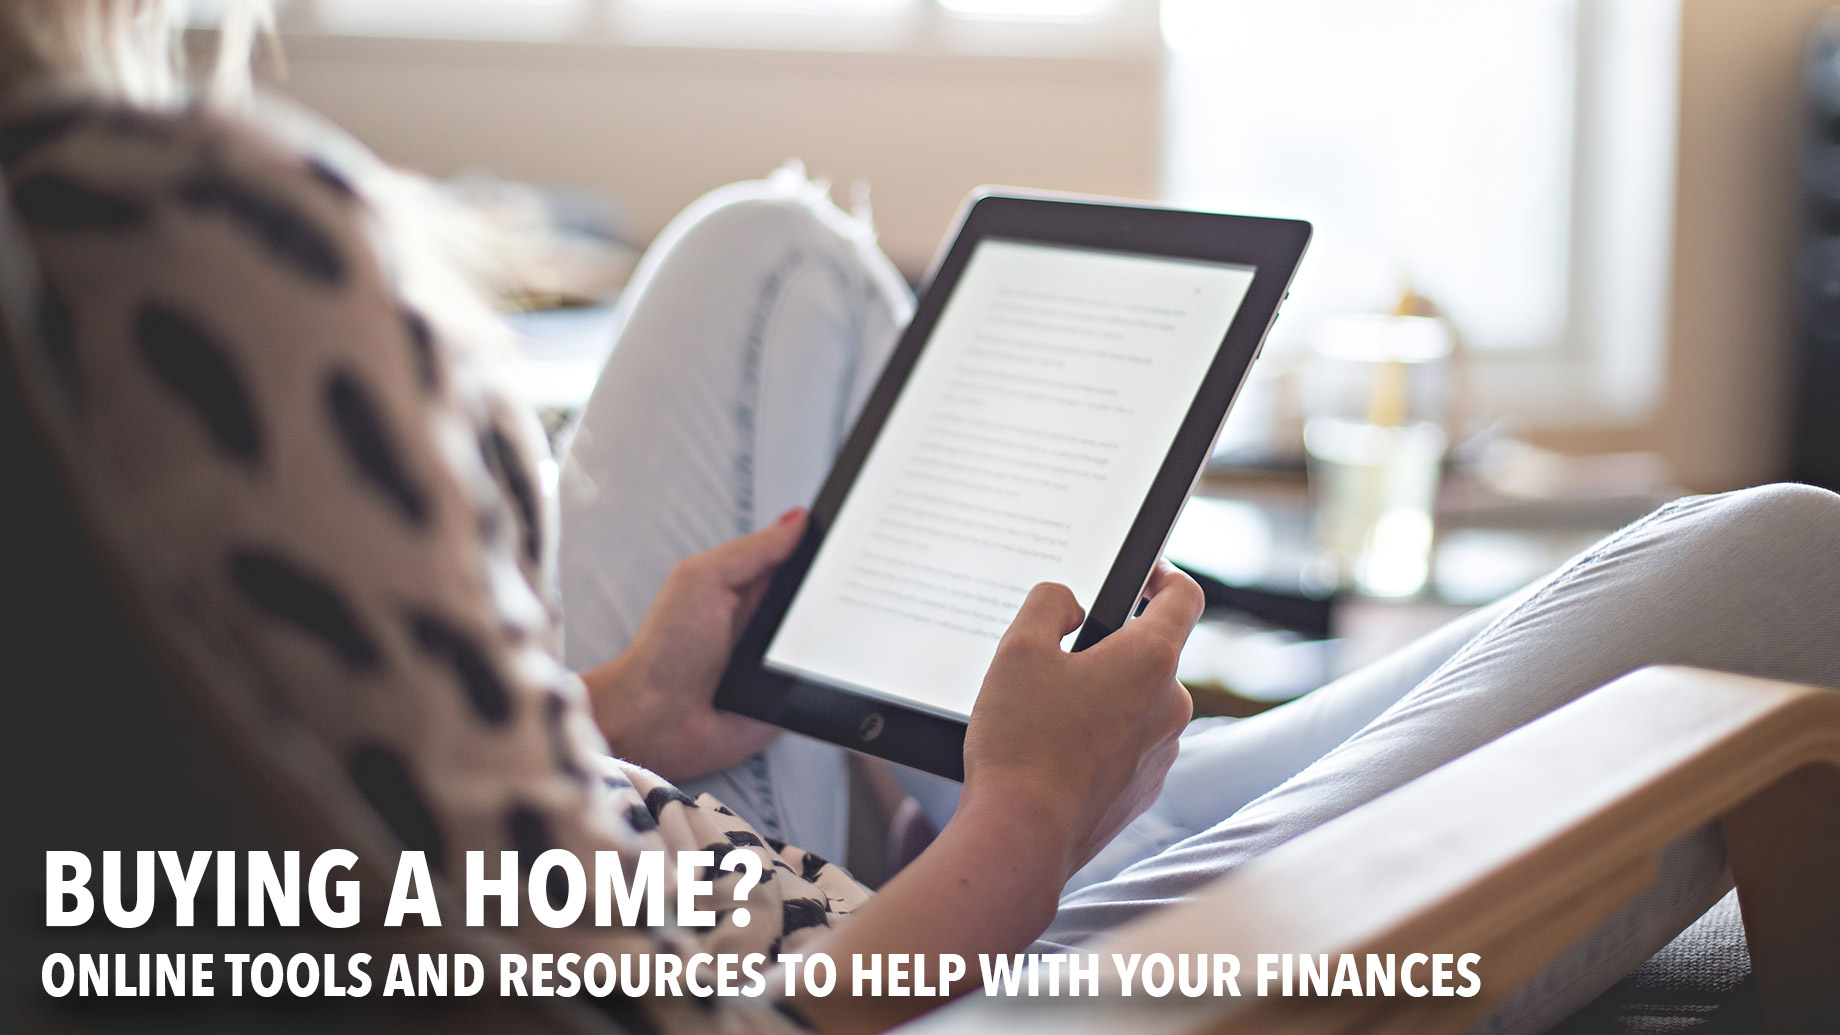 Buying a Home - Online Tools and Resources to Help With Your Finances